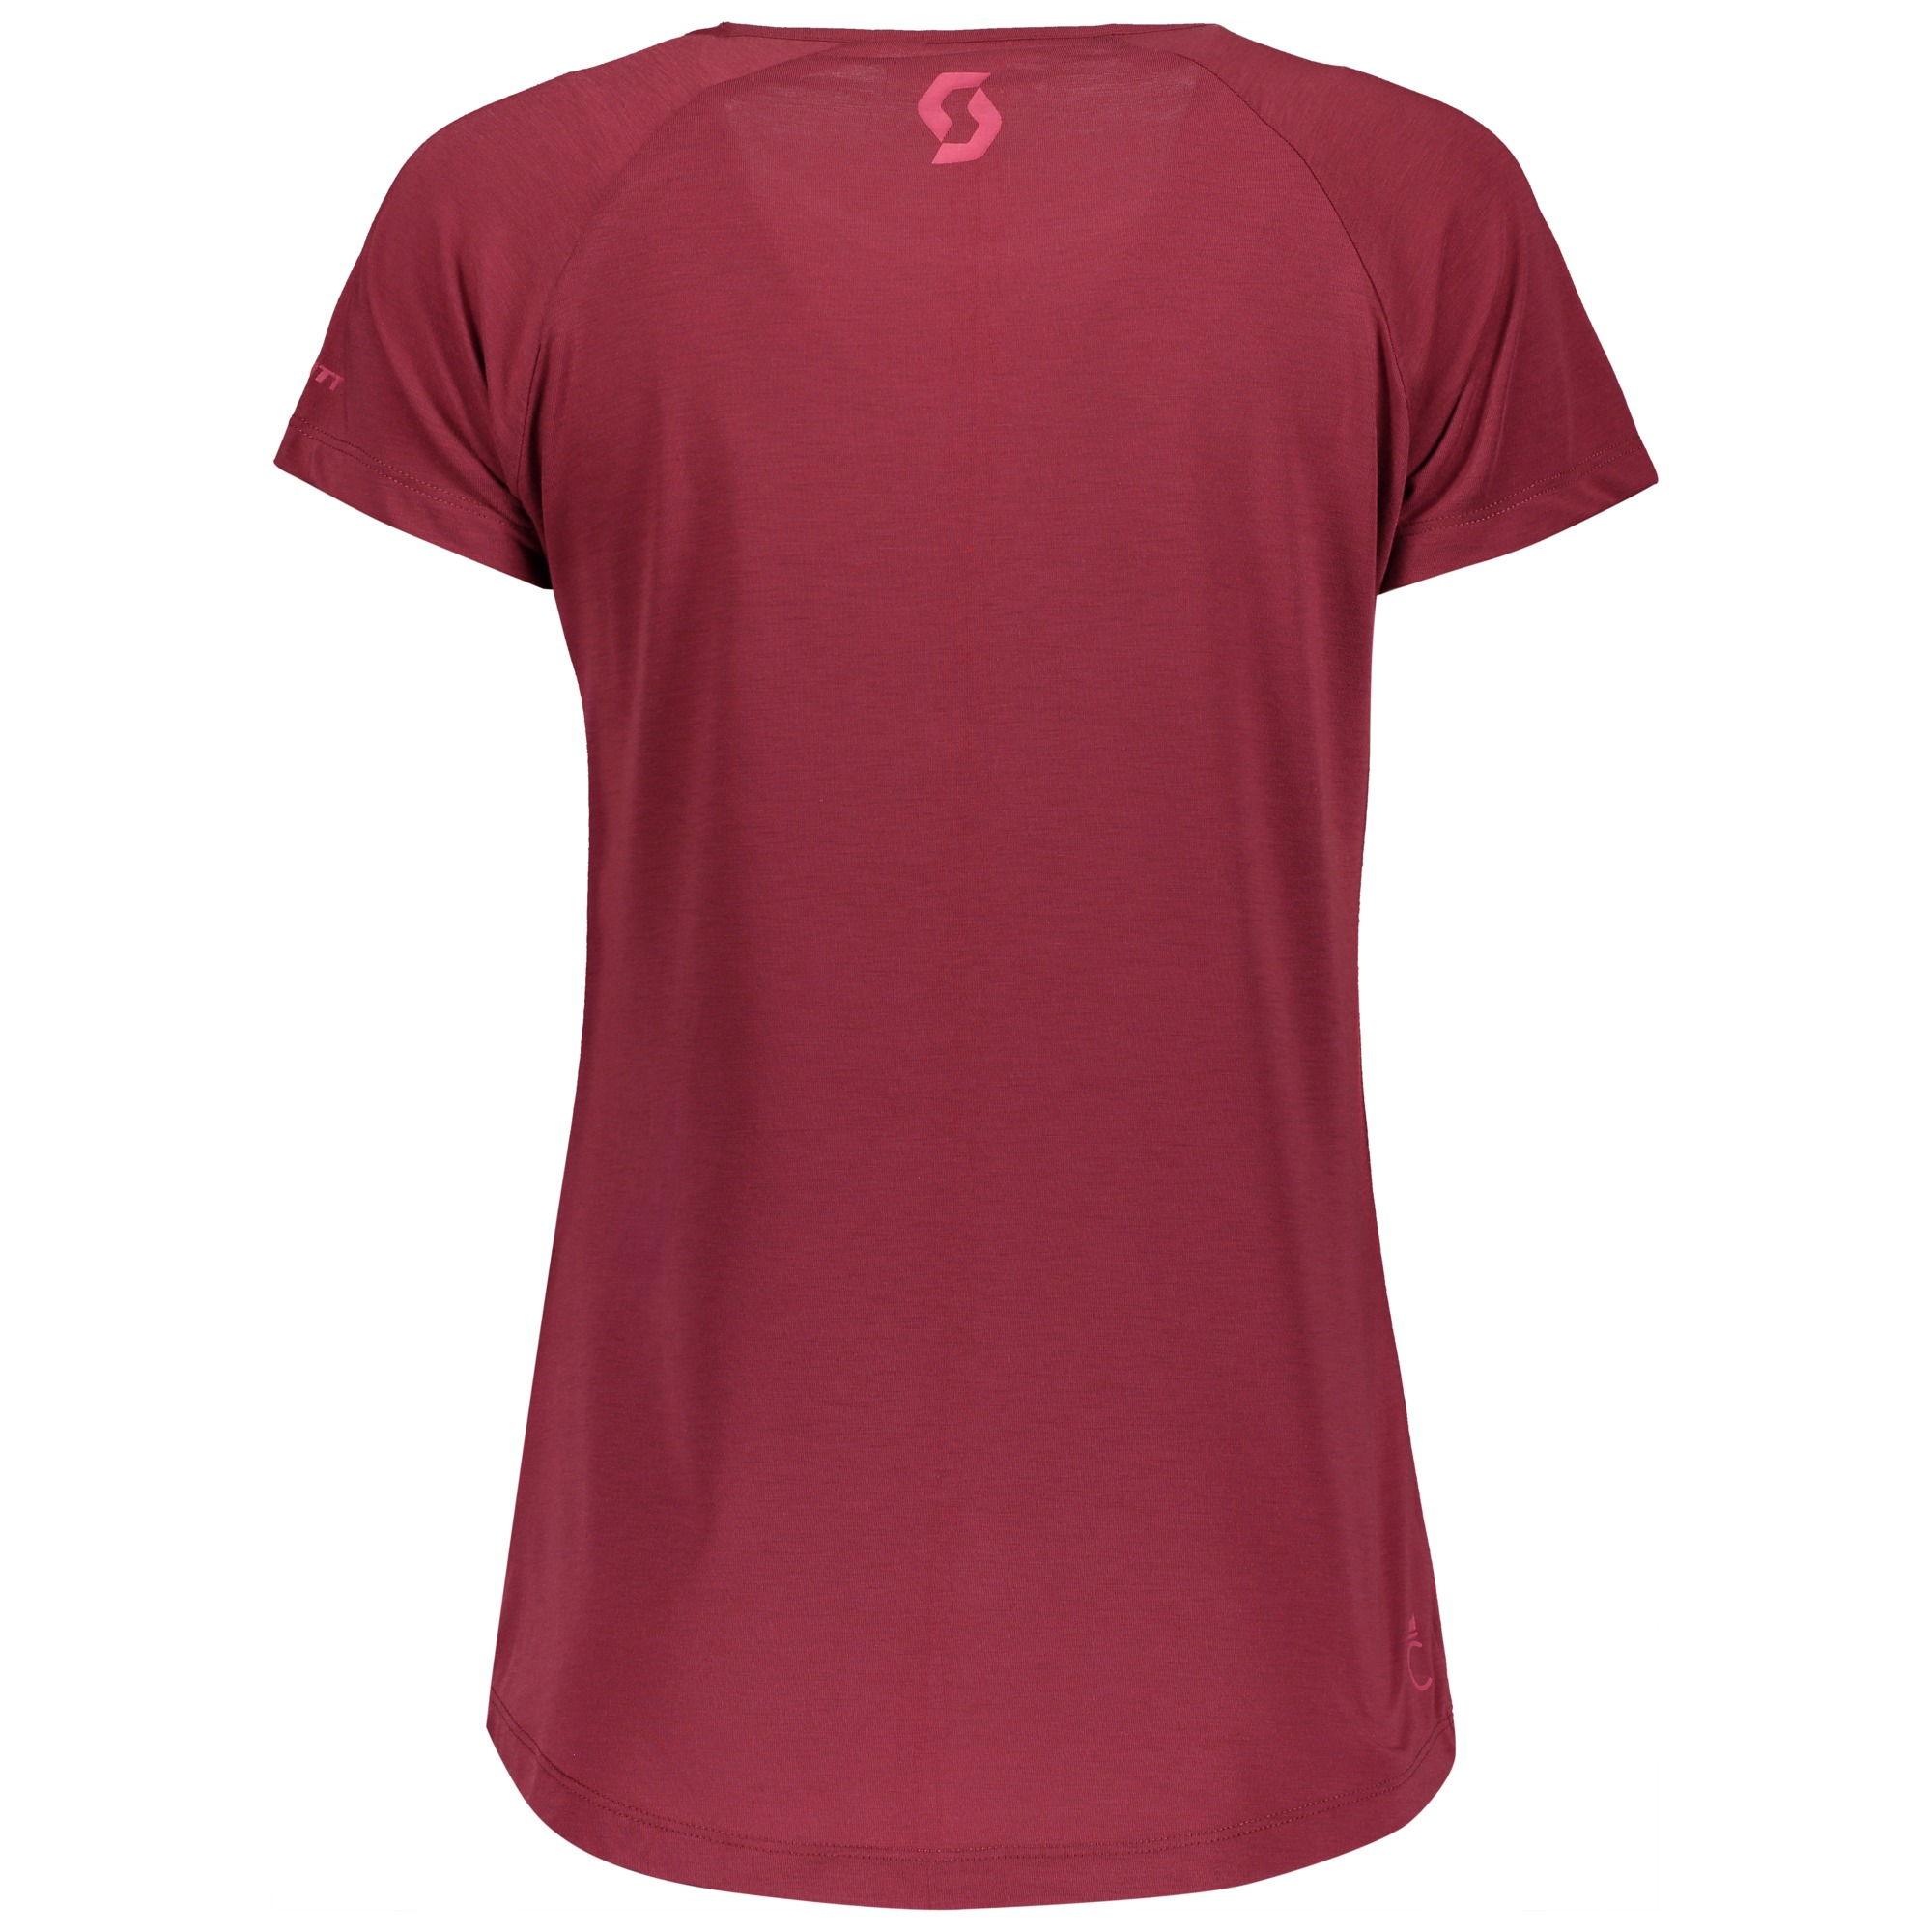 SCOTT Trail 70 DRI s/sl Women's Shirt